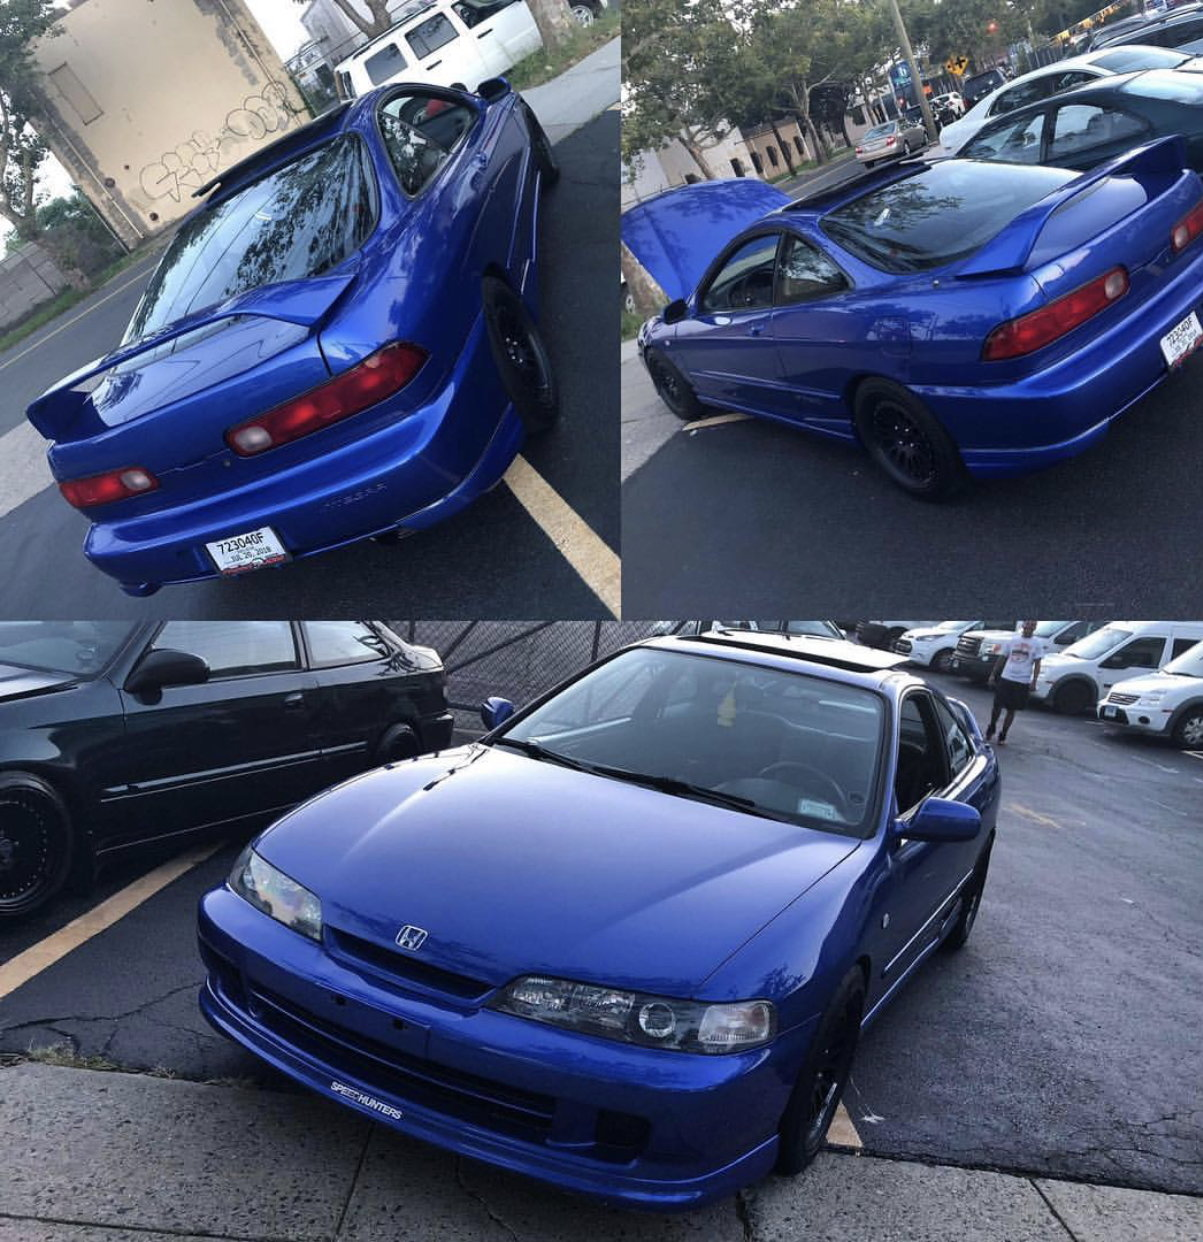 F/s 2001 Integra Gsr Clean Title. Type R Motor And Trans